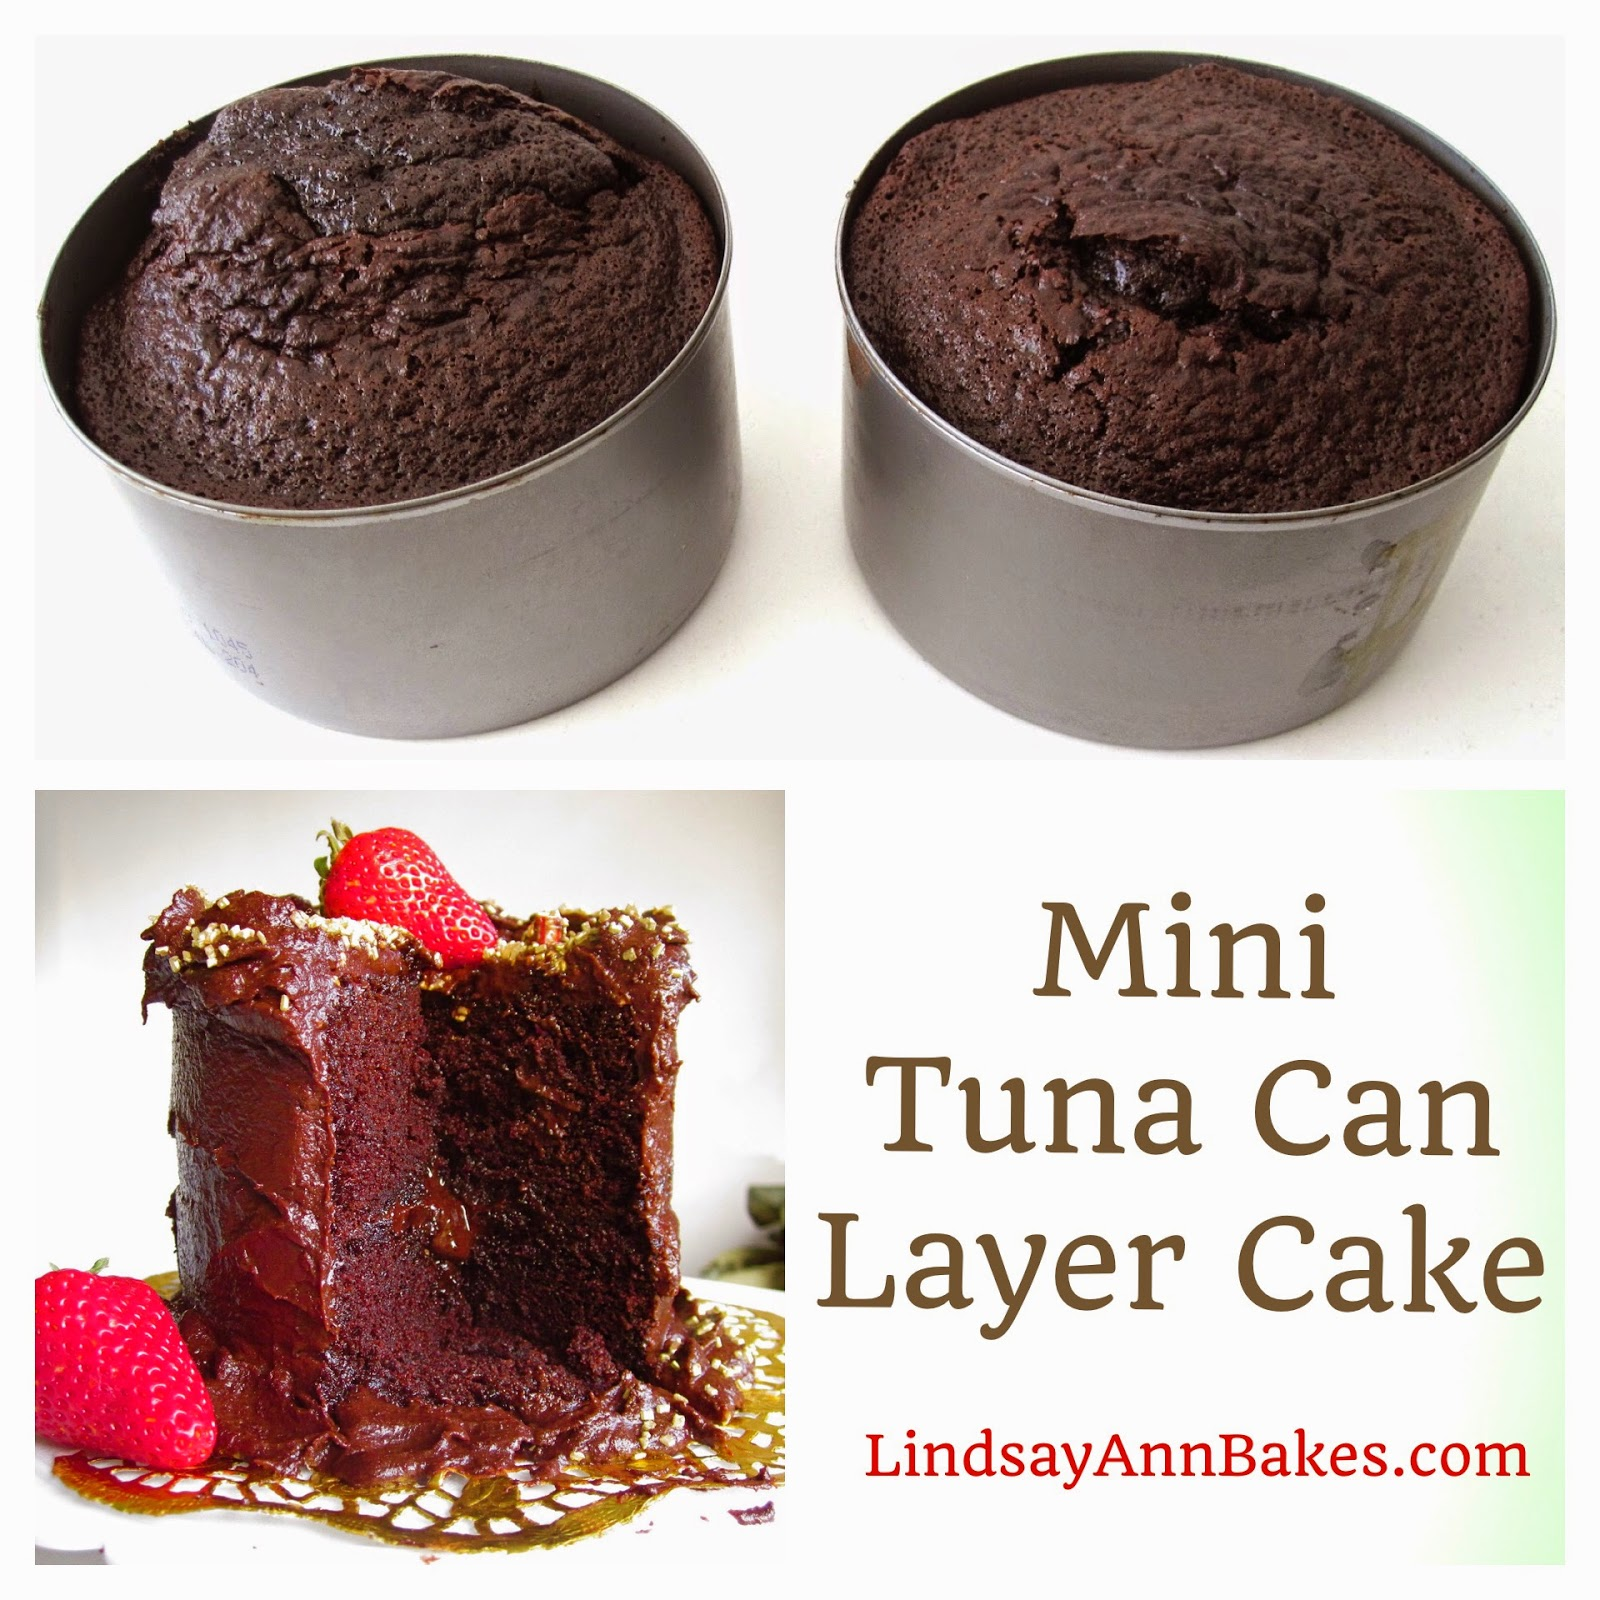 Mini 4Inch Double Chocolate Layer Cake For Two Lindsay Ann Bakes